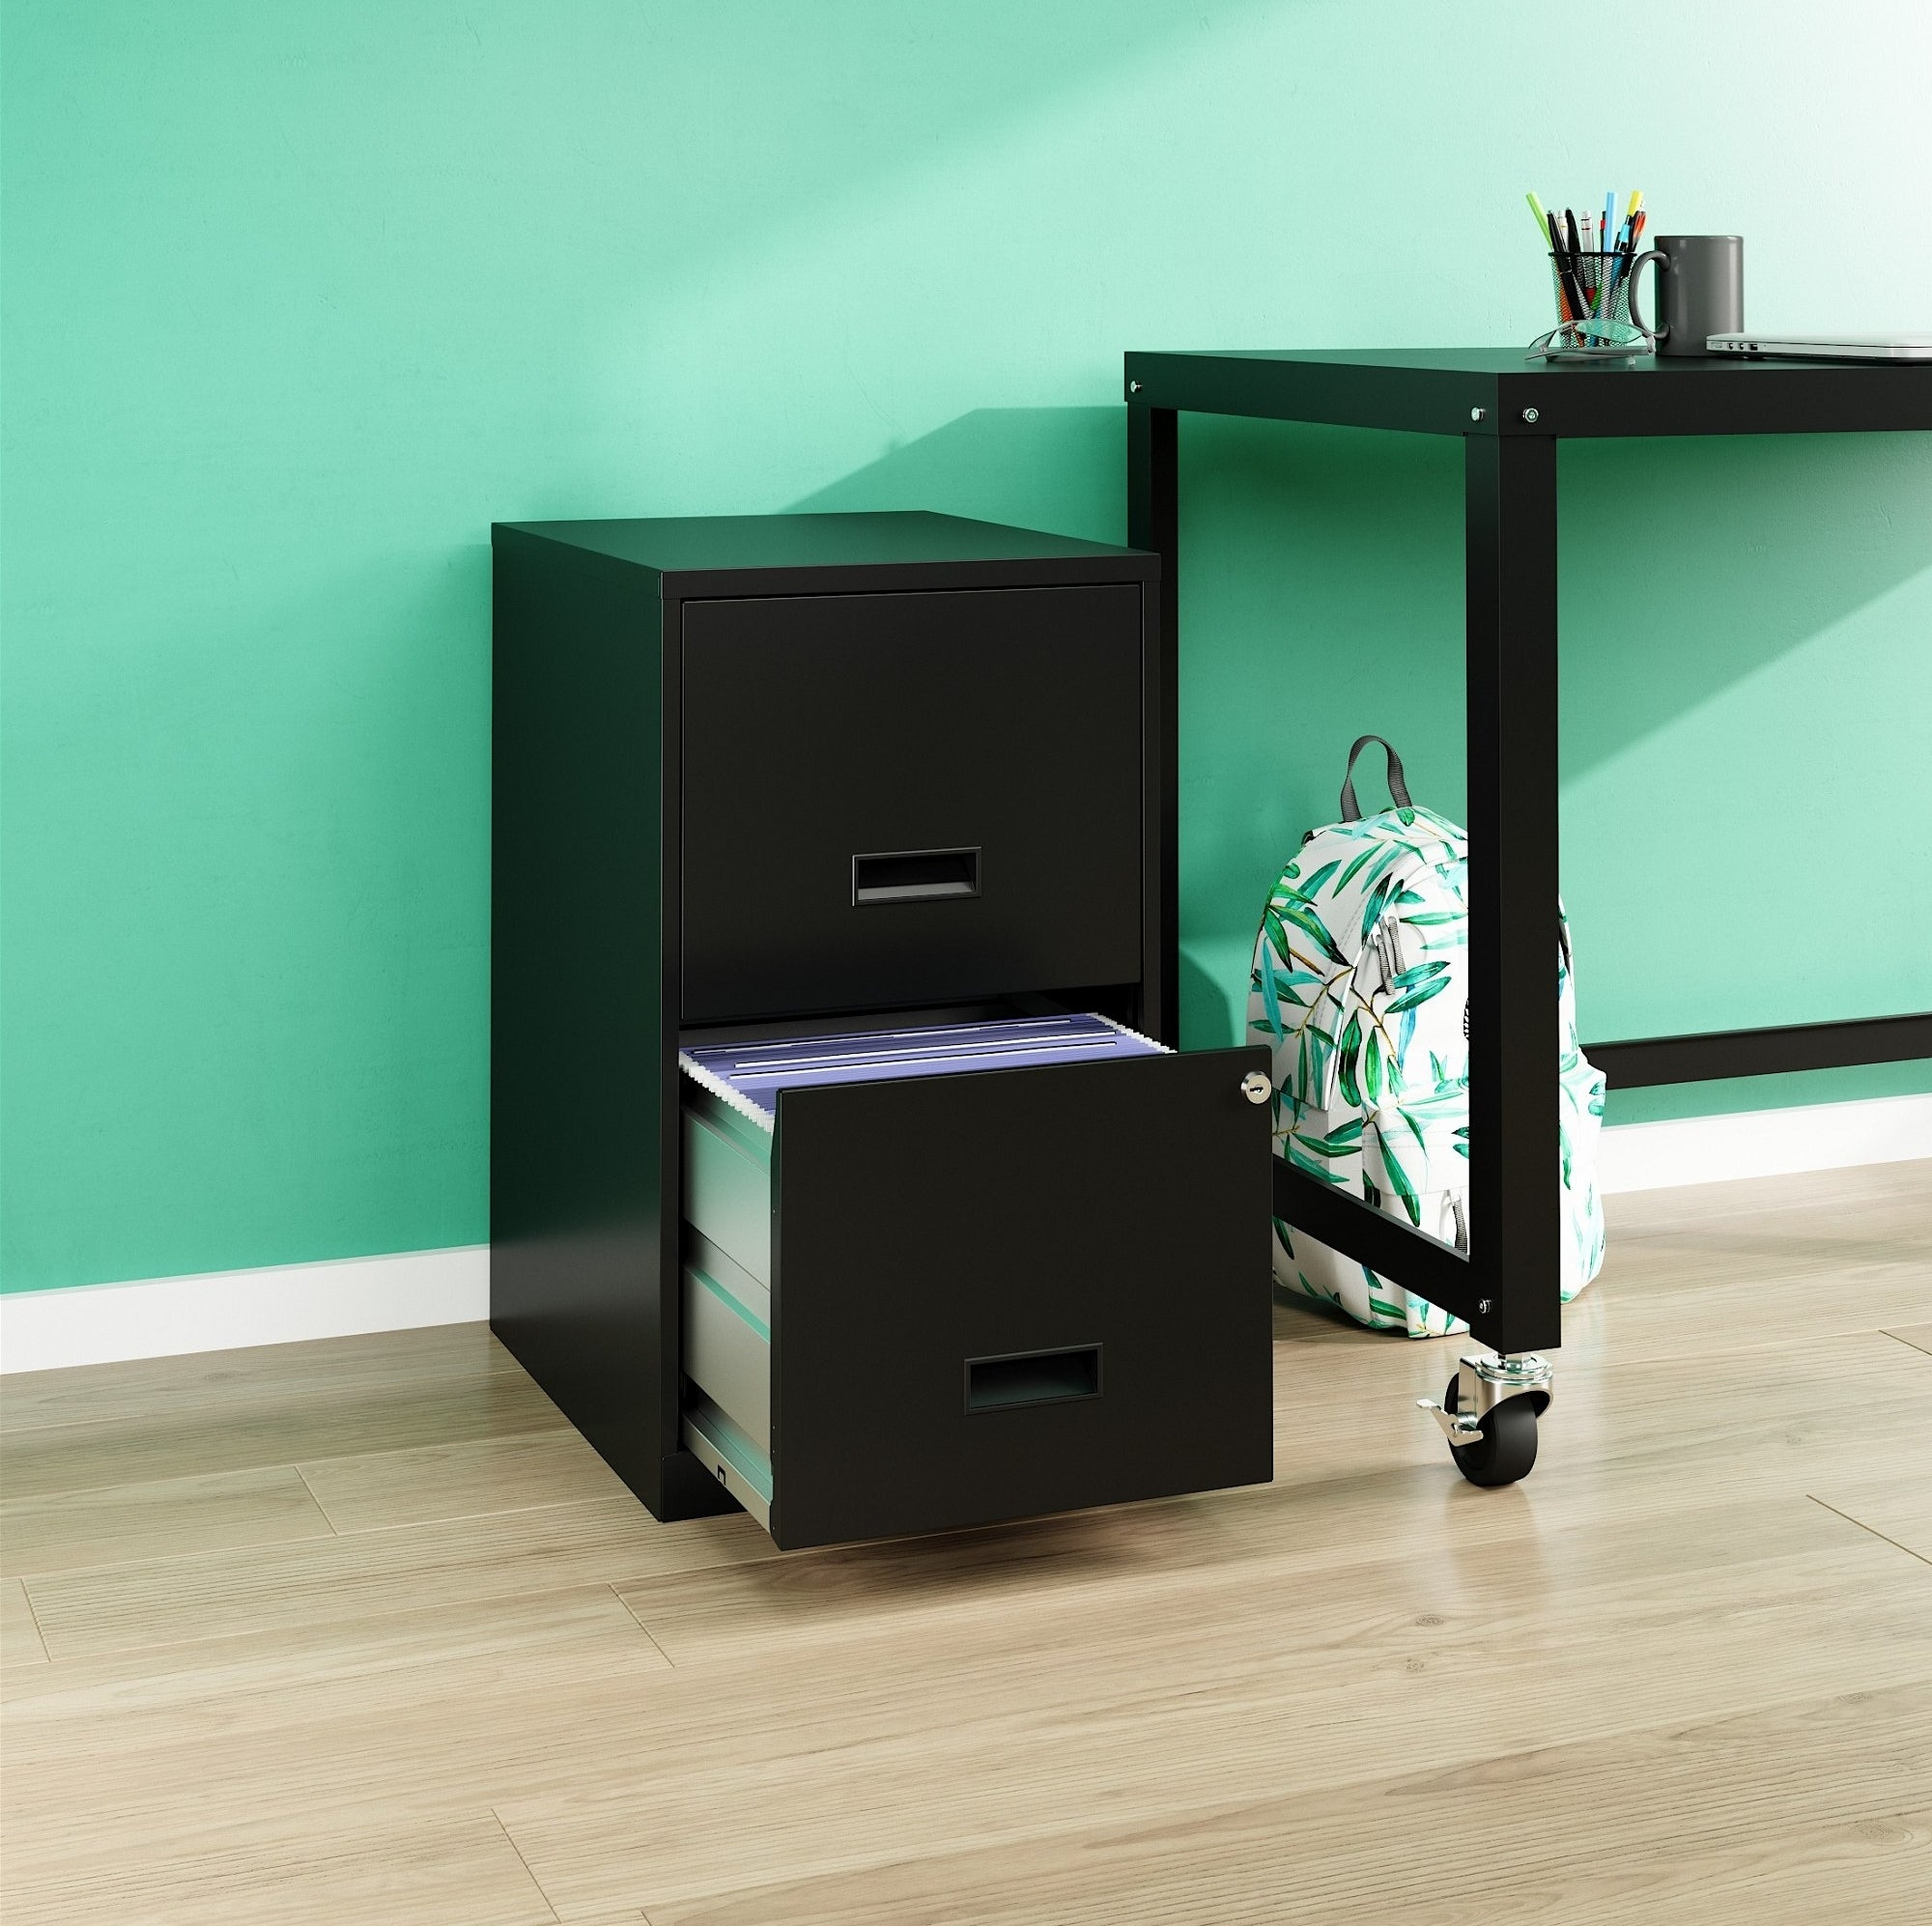 The filing cabinet with bottom drawer opened